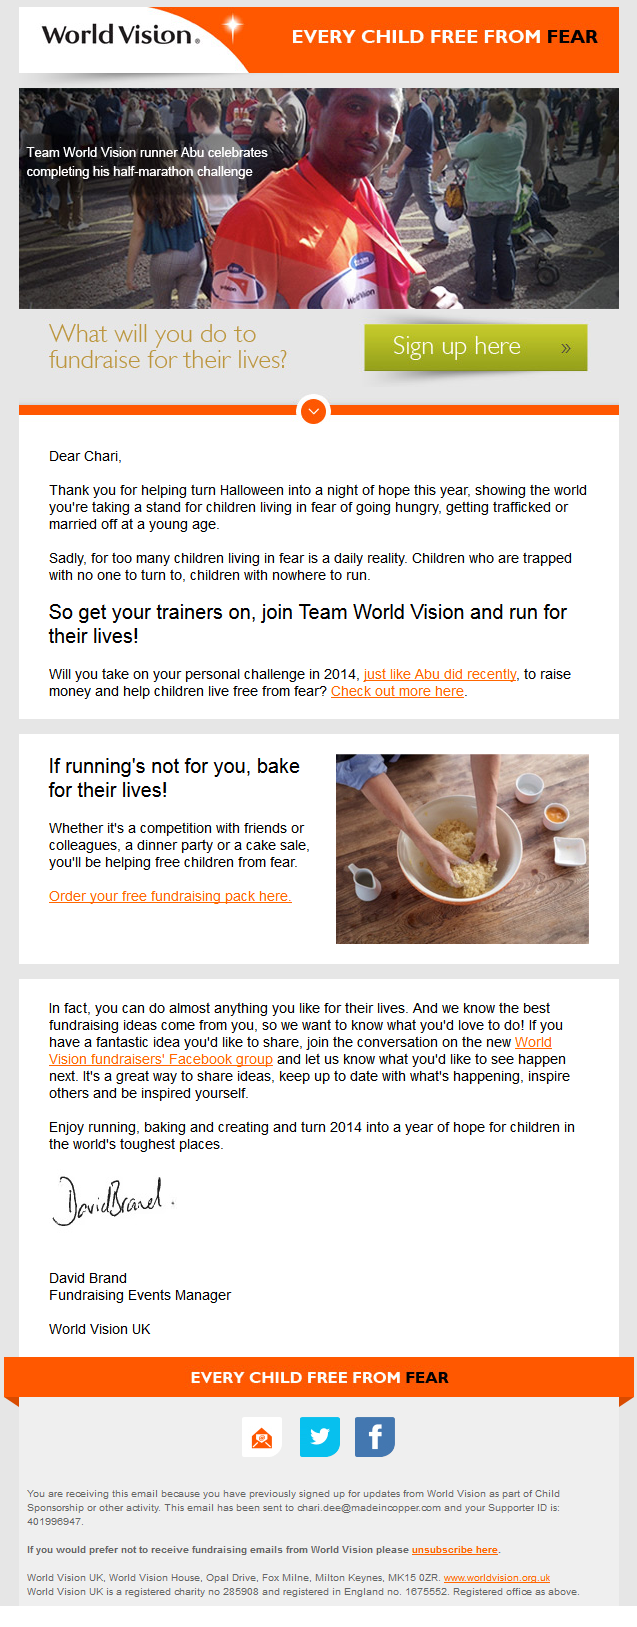 Charity Emails - Will you fundraise for their lives?